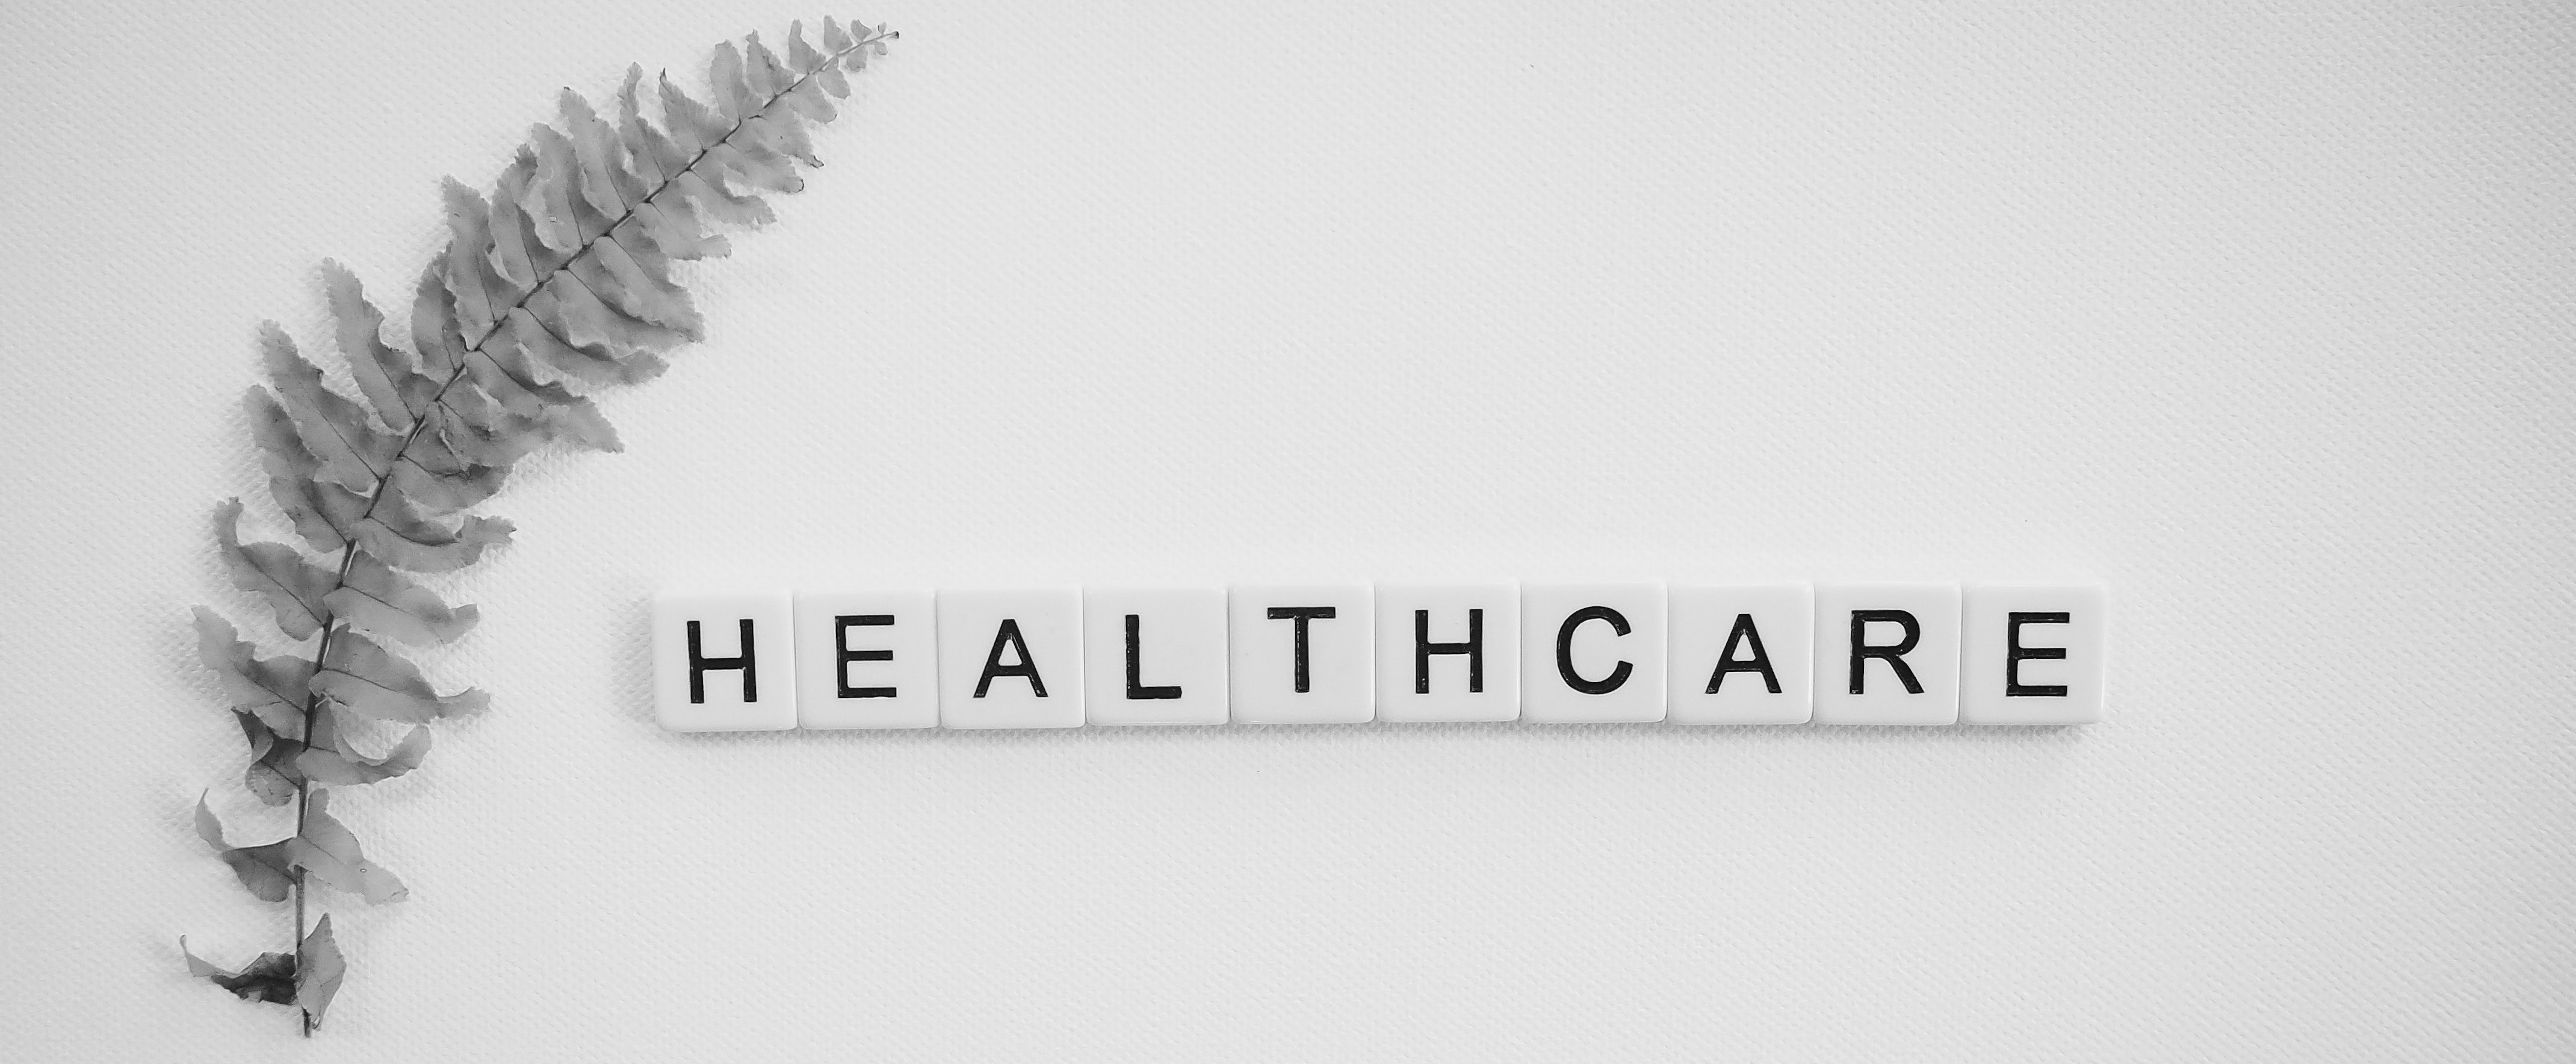 Employee Password Security for Healthcare Providershttps://www.enzoic.com/password-security-healthcare-providers/(opens in a new tab)